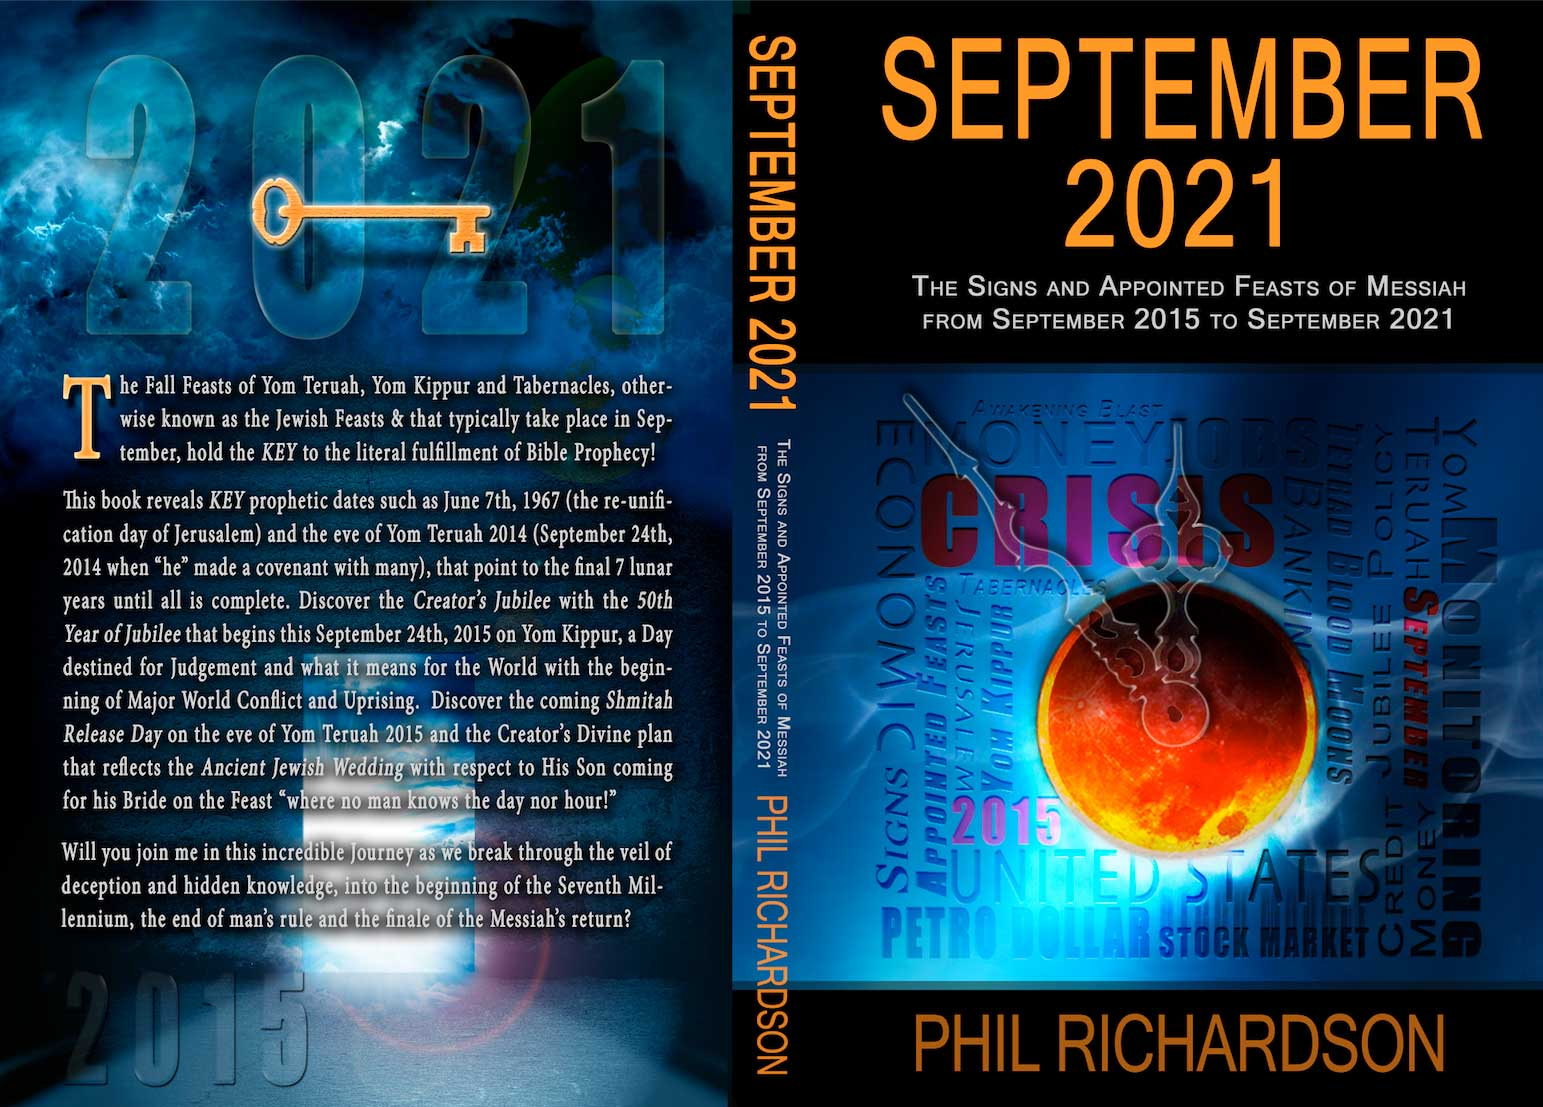 Book SEPTEMBER 2021 Graphs and Images